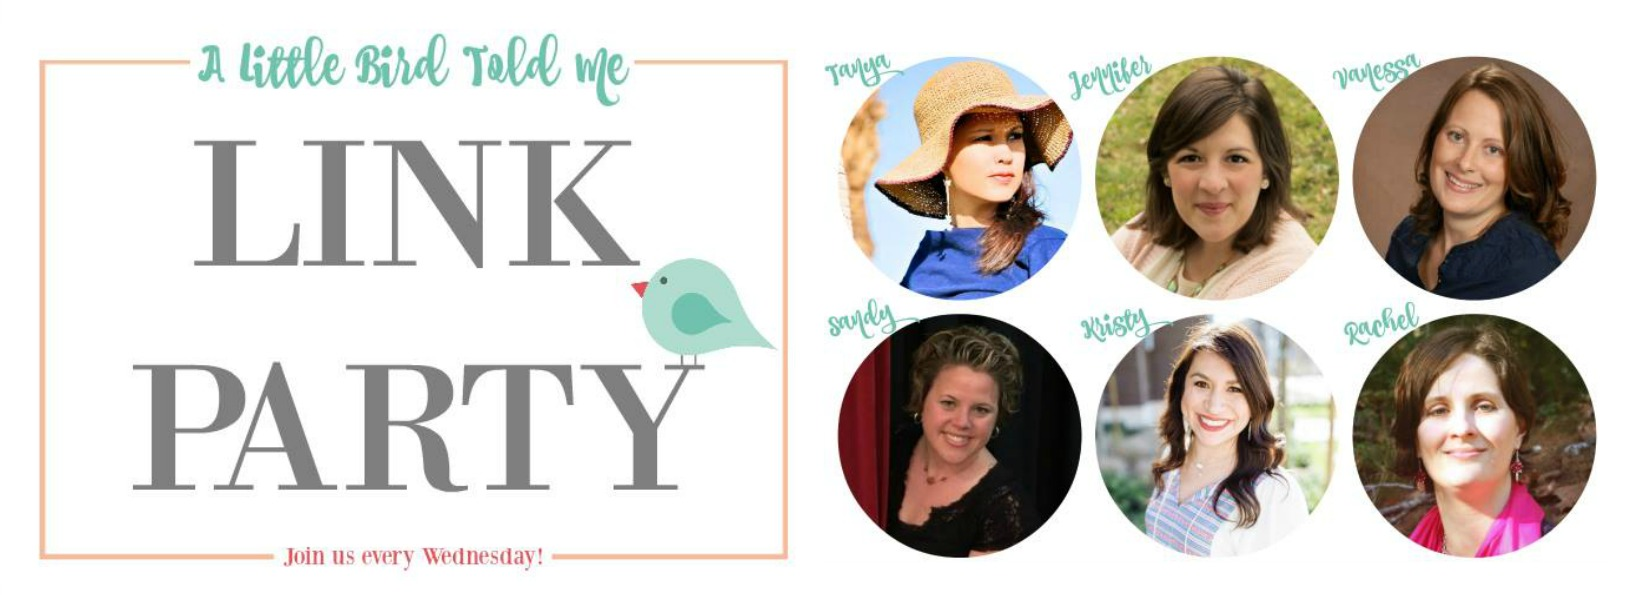 A Little Bird Told Me Weekly Link Party